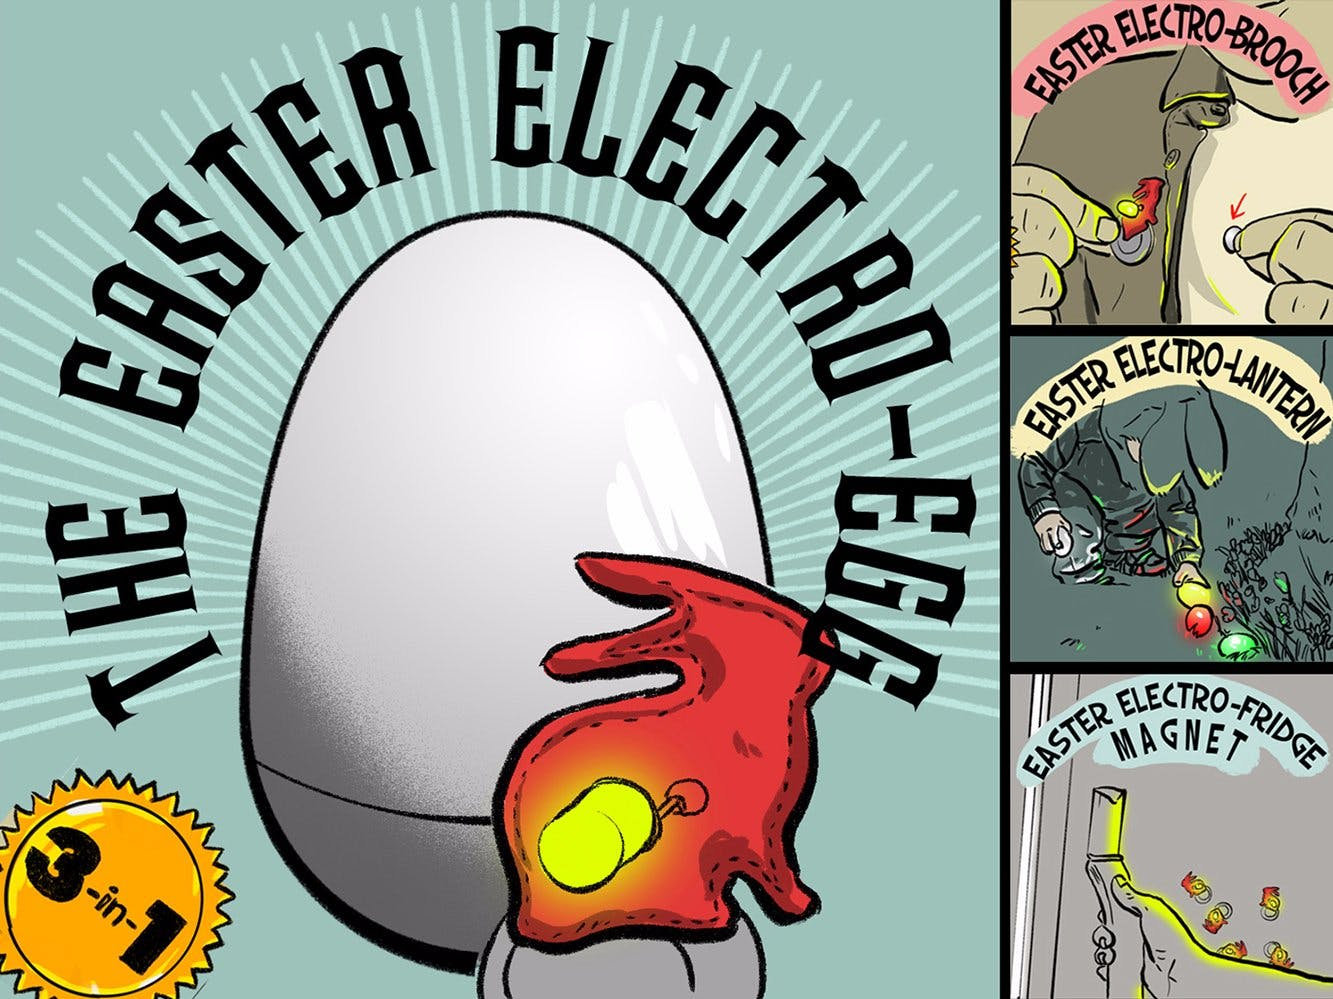 Easter Electro-Egg